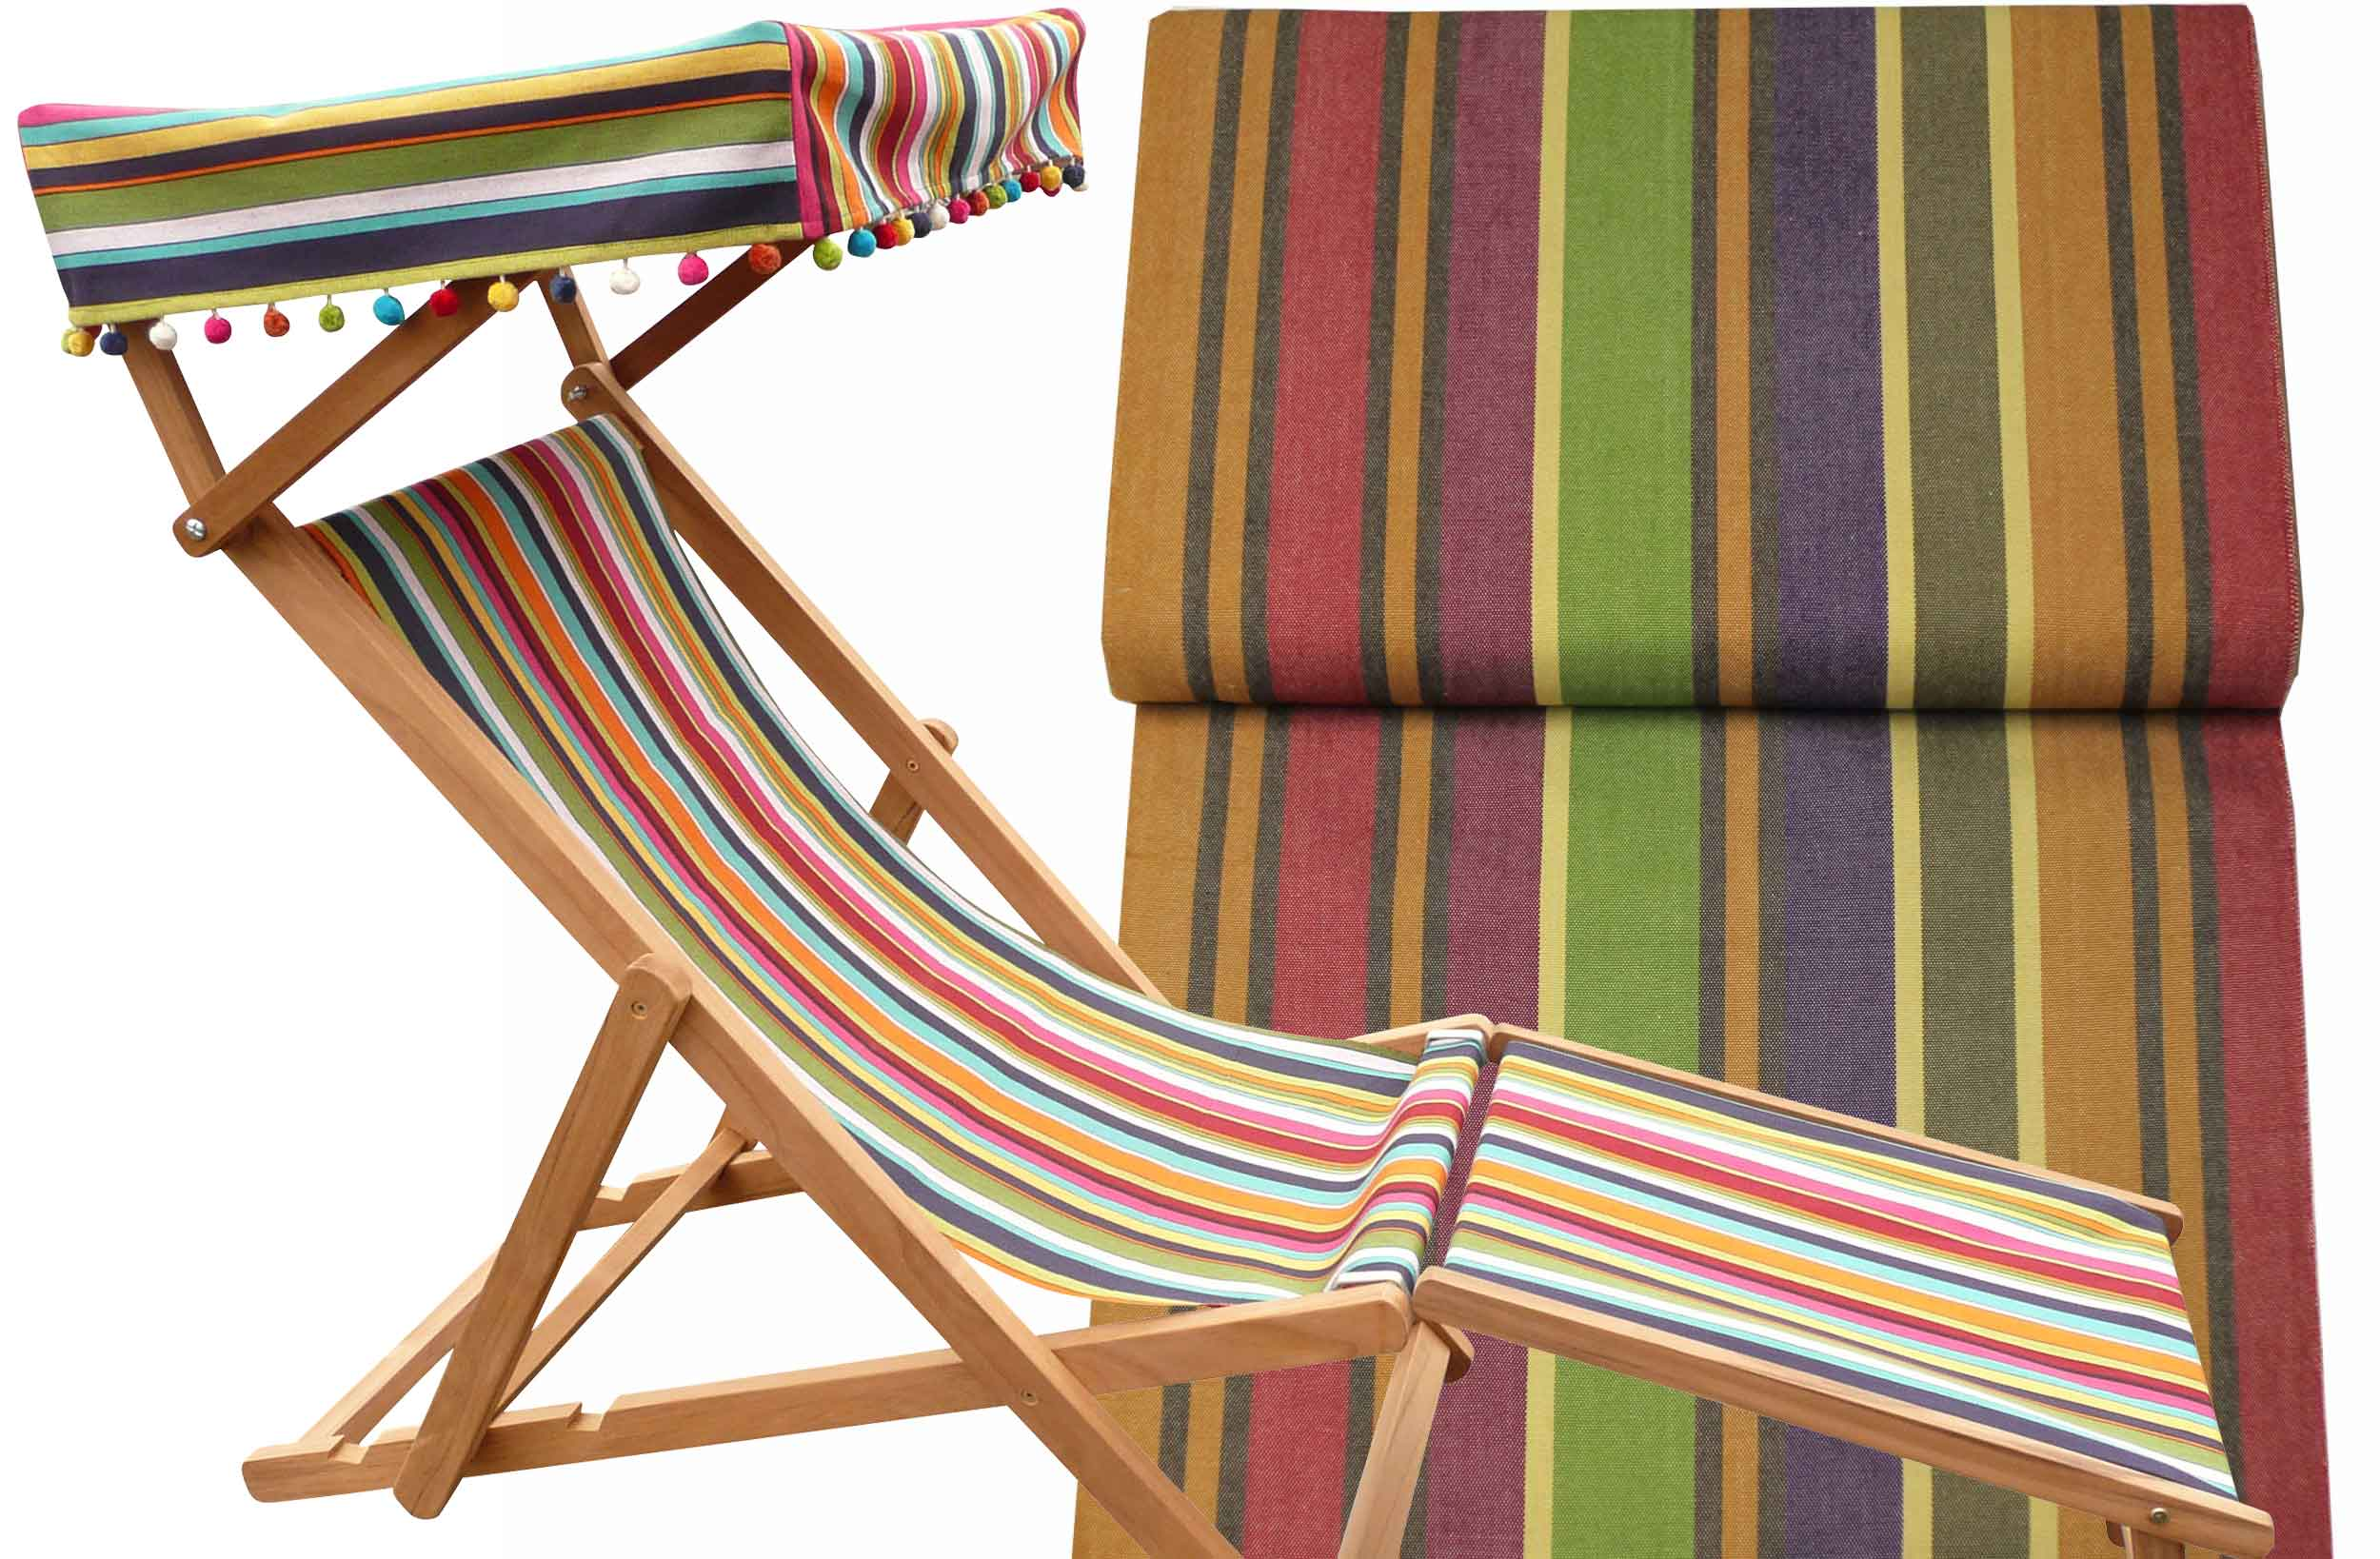 Edwardian Deckchairs with Canopy and Footstool caramel, beige, purple